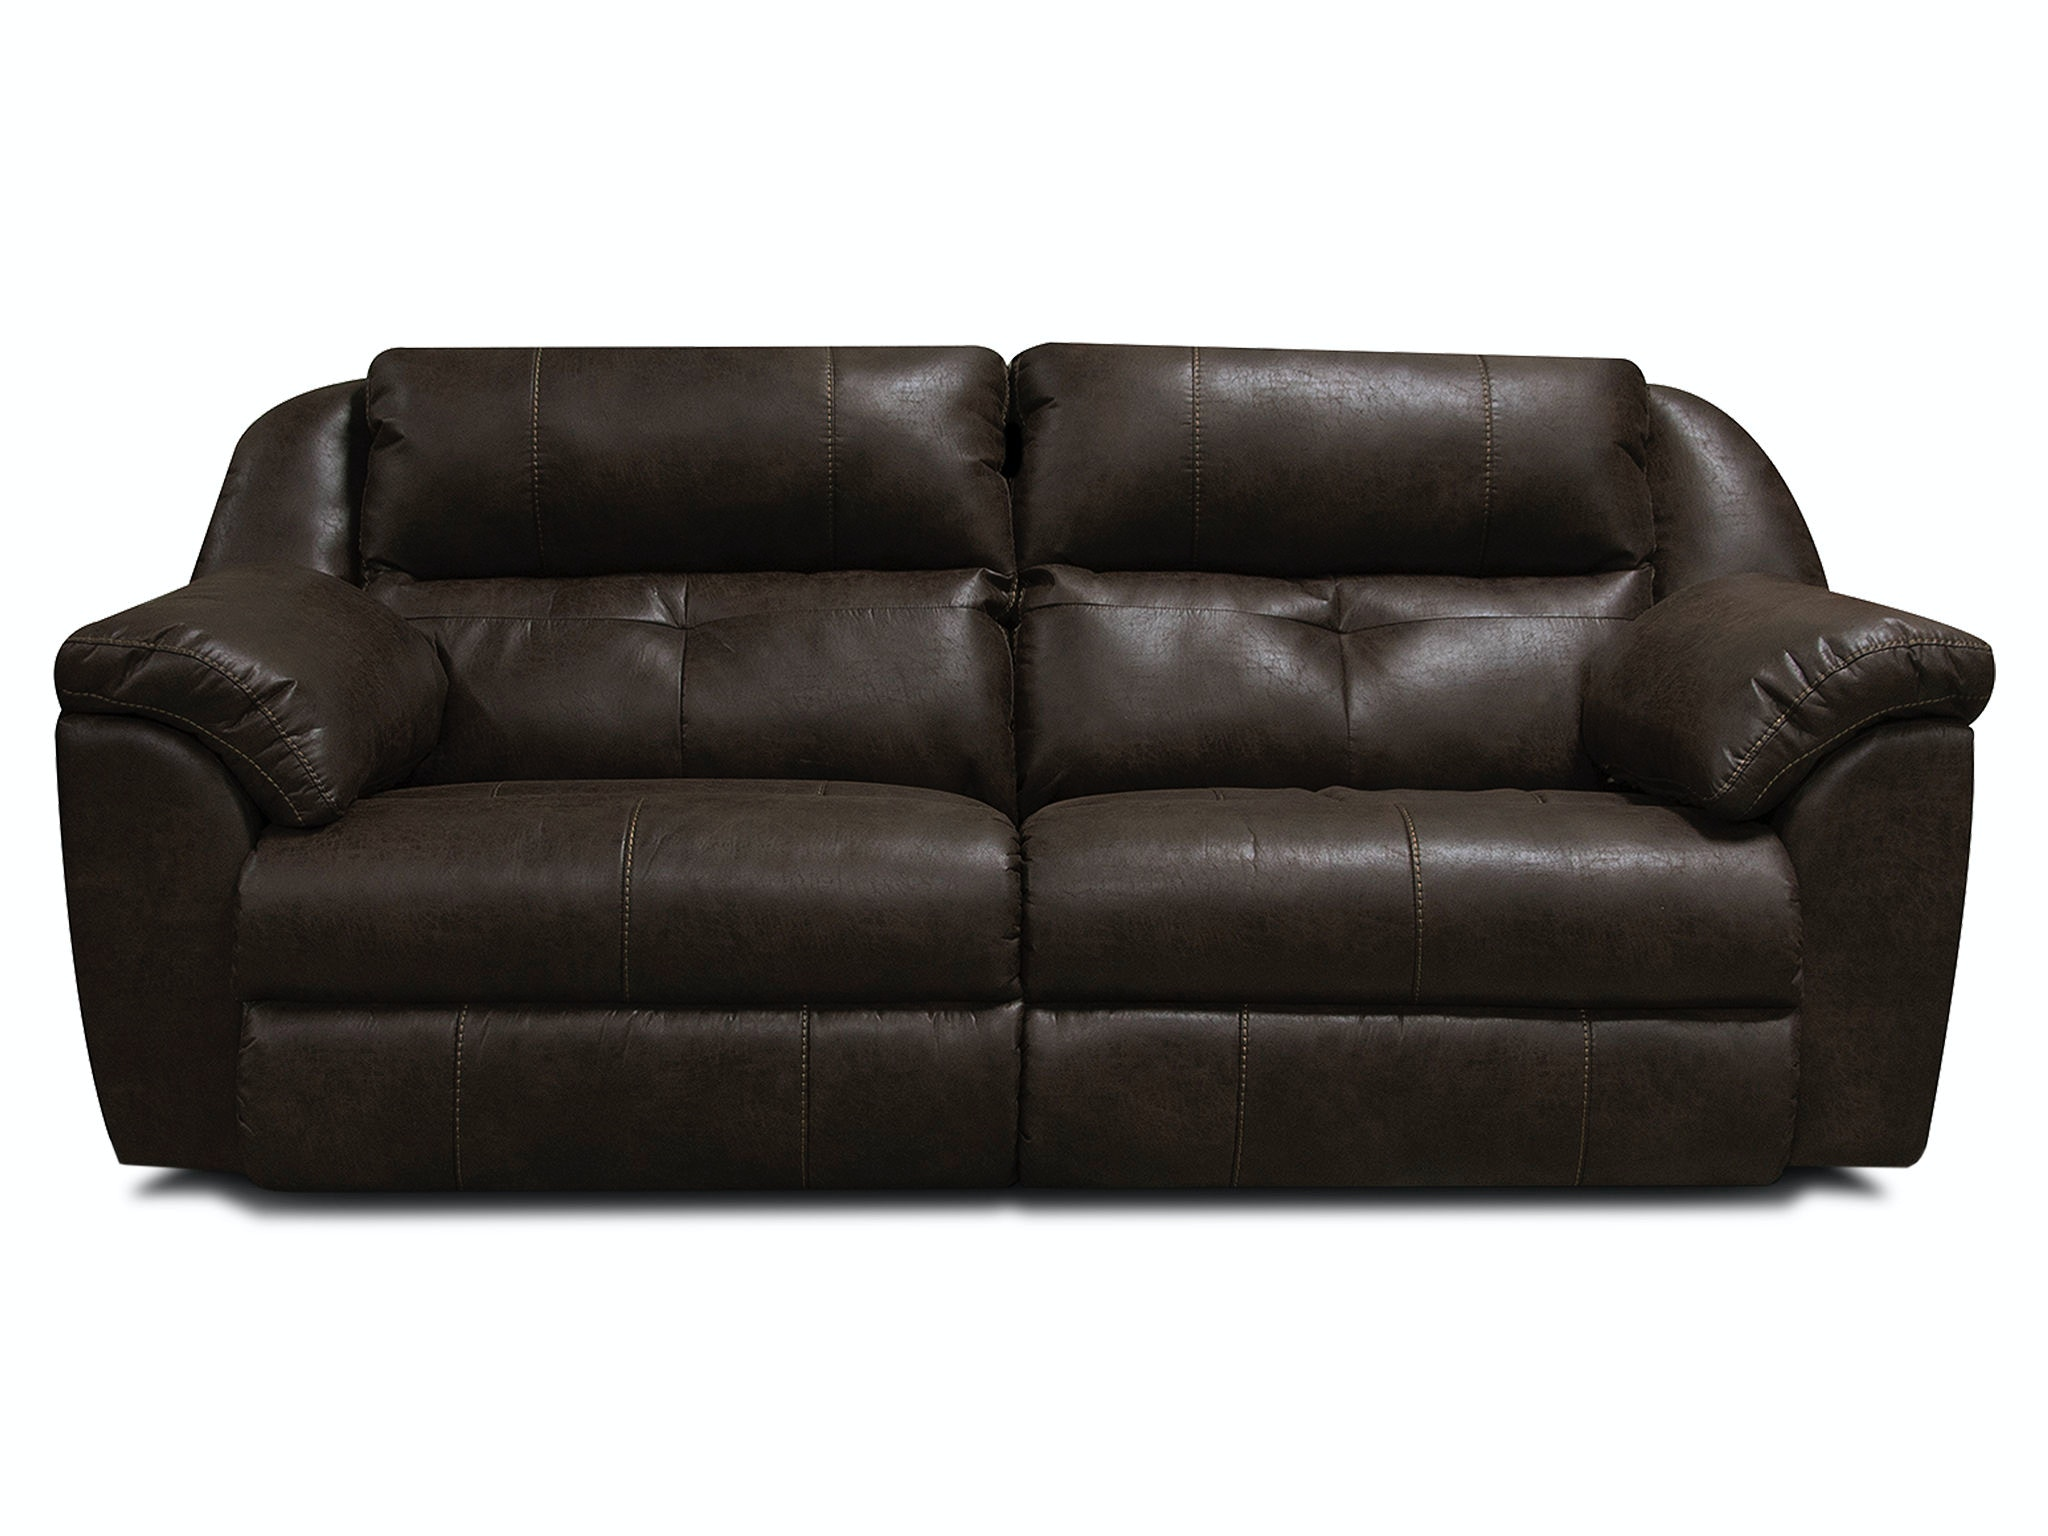 England Double Reclining Sofa EZ6D01H  sc 1 st  England Furniture : double recliner couch - islam-shia.org